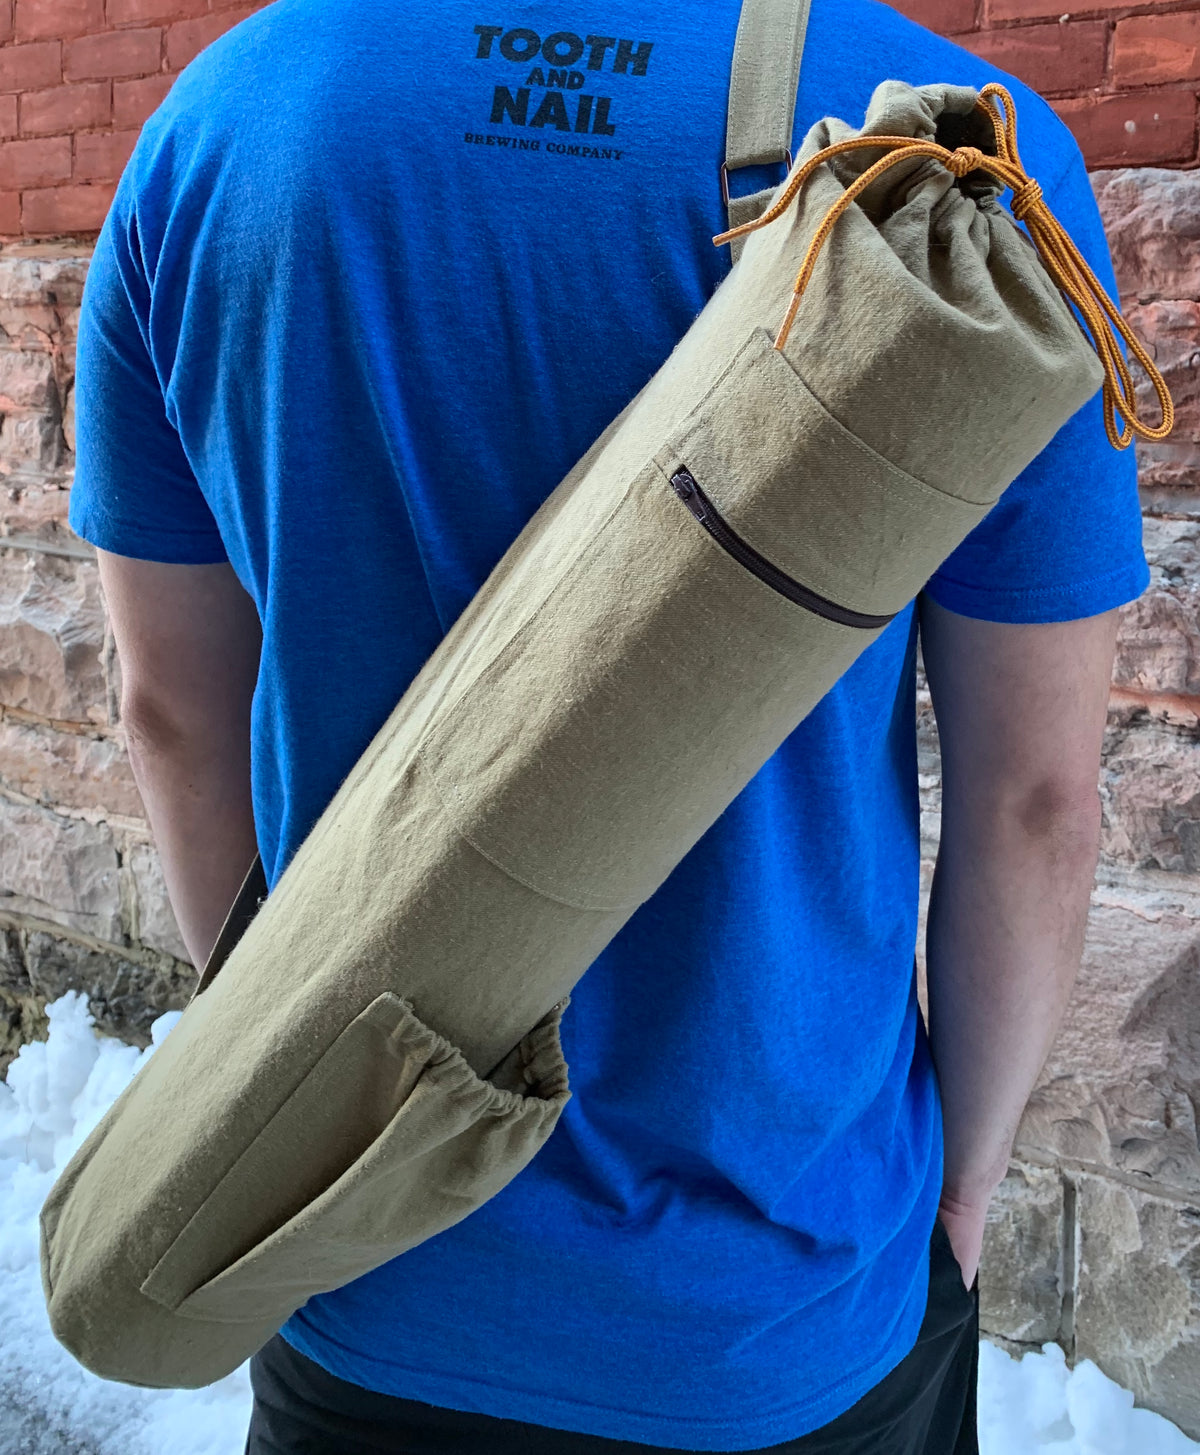 DIY Hemp Yoga Bag Tutorial - Day 1 - Getting Started!